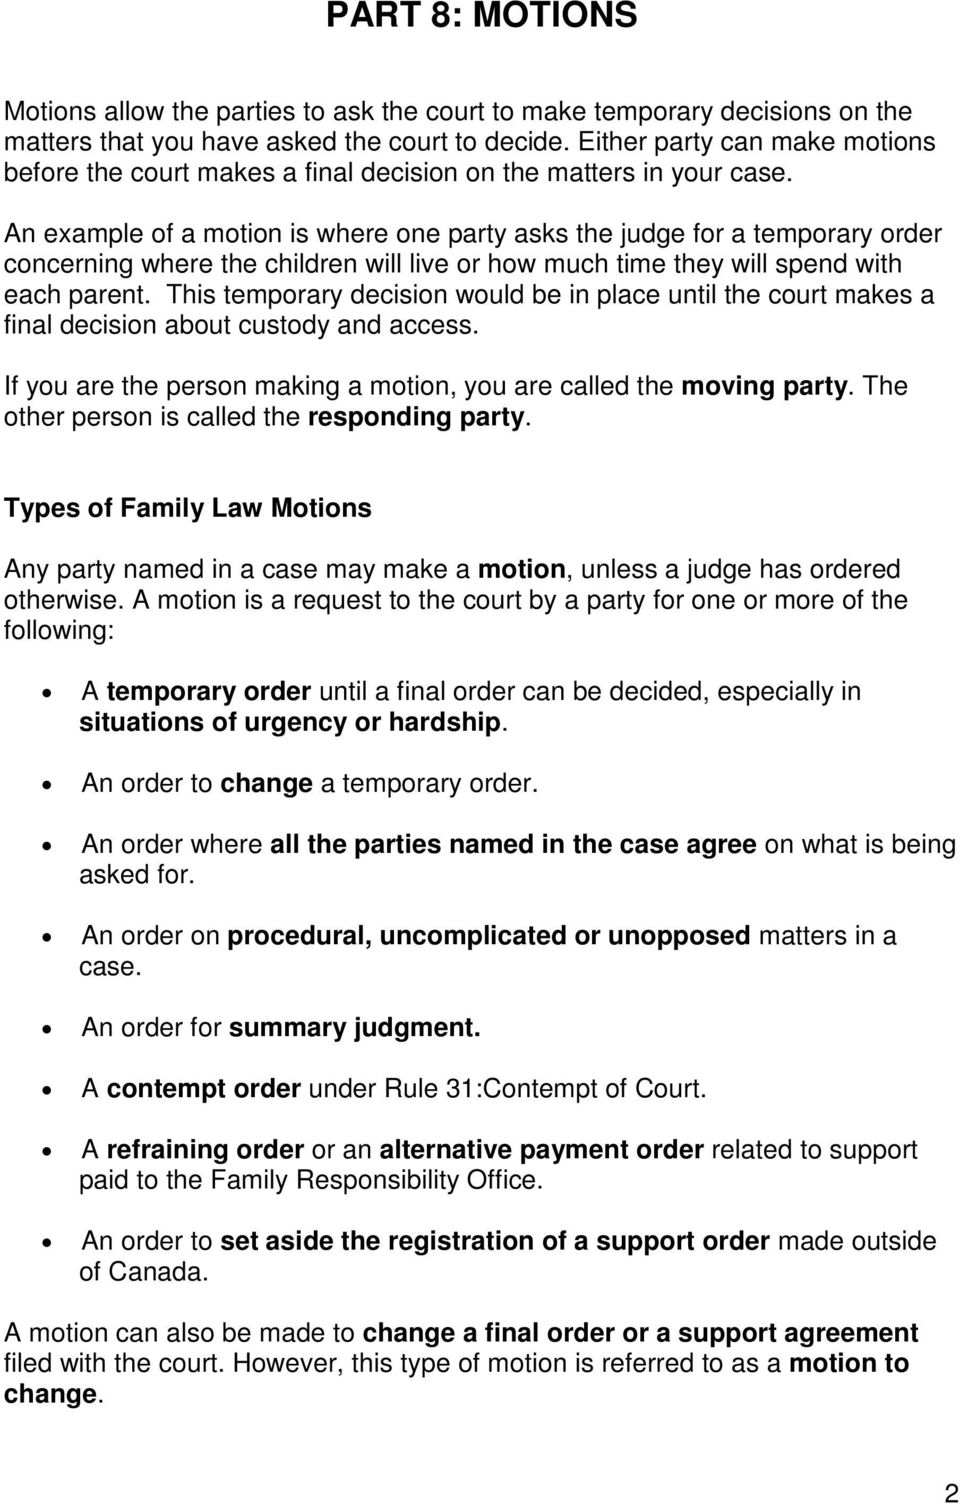 An example of a motion is where one party asks the judge for a temporary order concerning where the children will live or how much time they will spend with each parent.